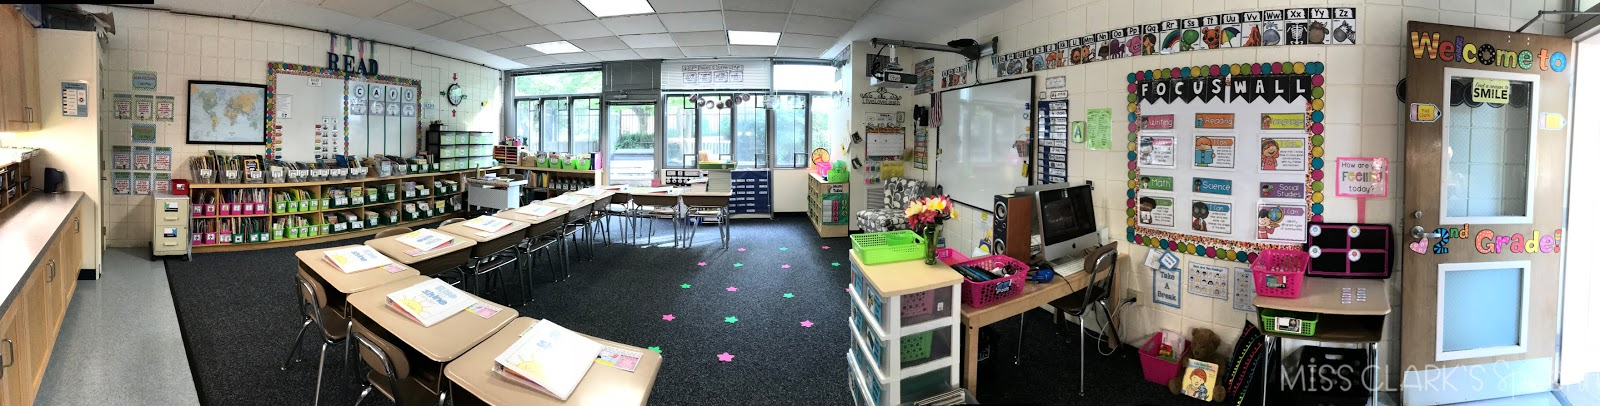 second grade pink and green classroom